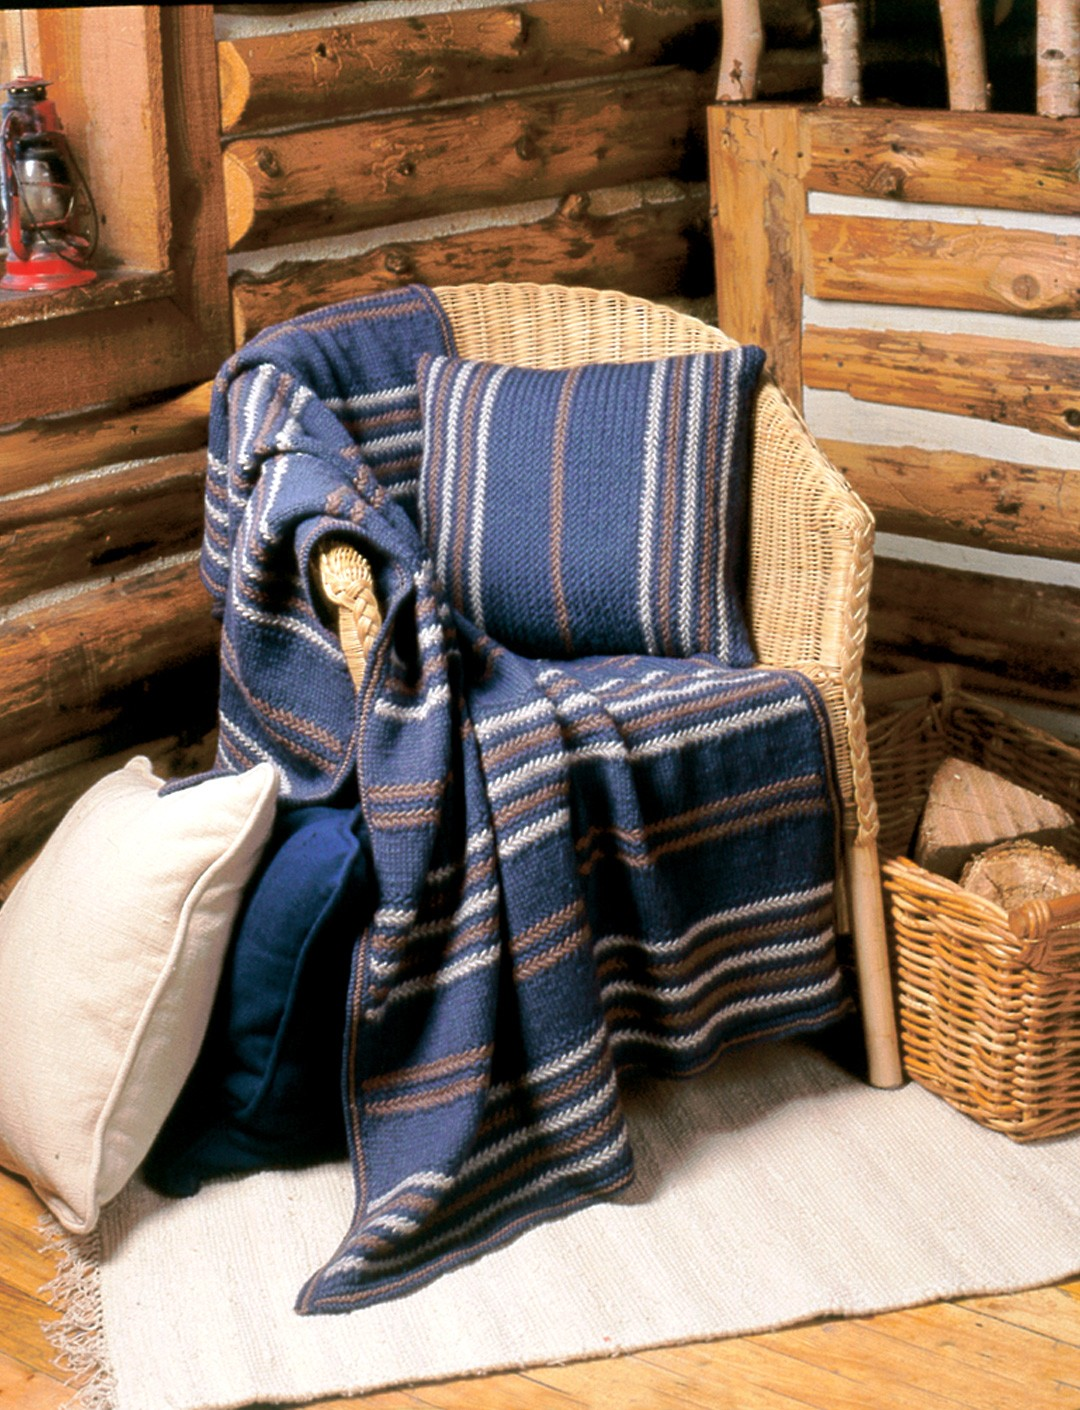 Woven-Look Afghan and Pillow